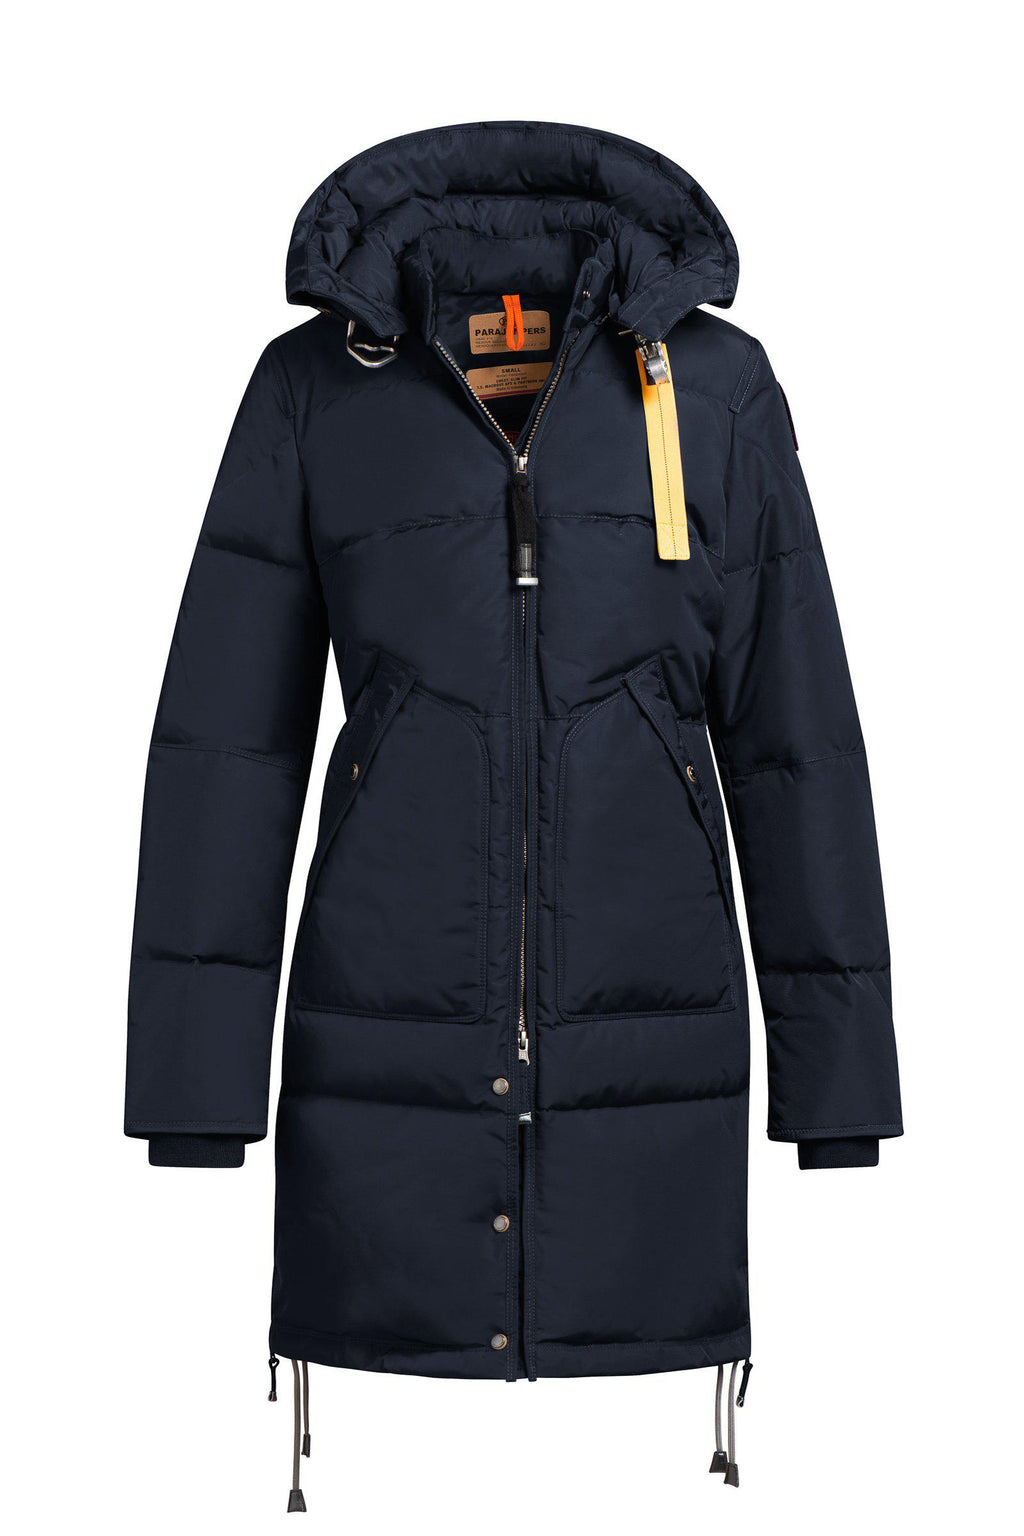 Parajumpers Long Bear Base-Jacket-Parajumpers-S-Navy-Classic fashion CF13